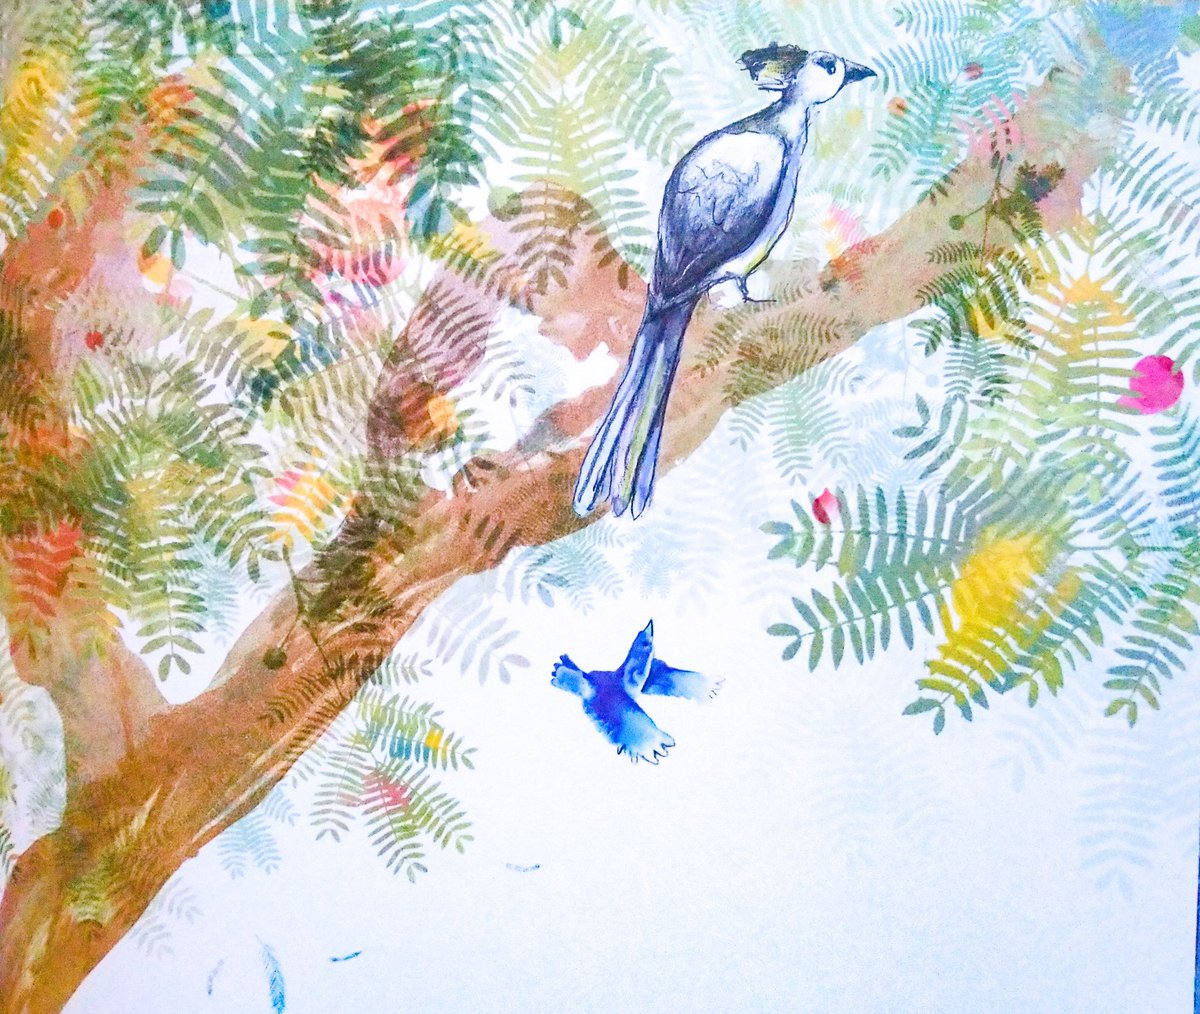 #BookIllustrationOfTheDay is by @catherinerayner for The Go Away Bird by Julia Donaldson (2019). I nabbed a signed copy in Edinburgh after falling in love with the birds in this book, from the filigree, feathery Flip Flap bird to the painterly & over powering Get You bird!